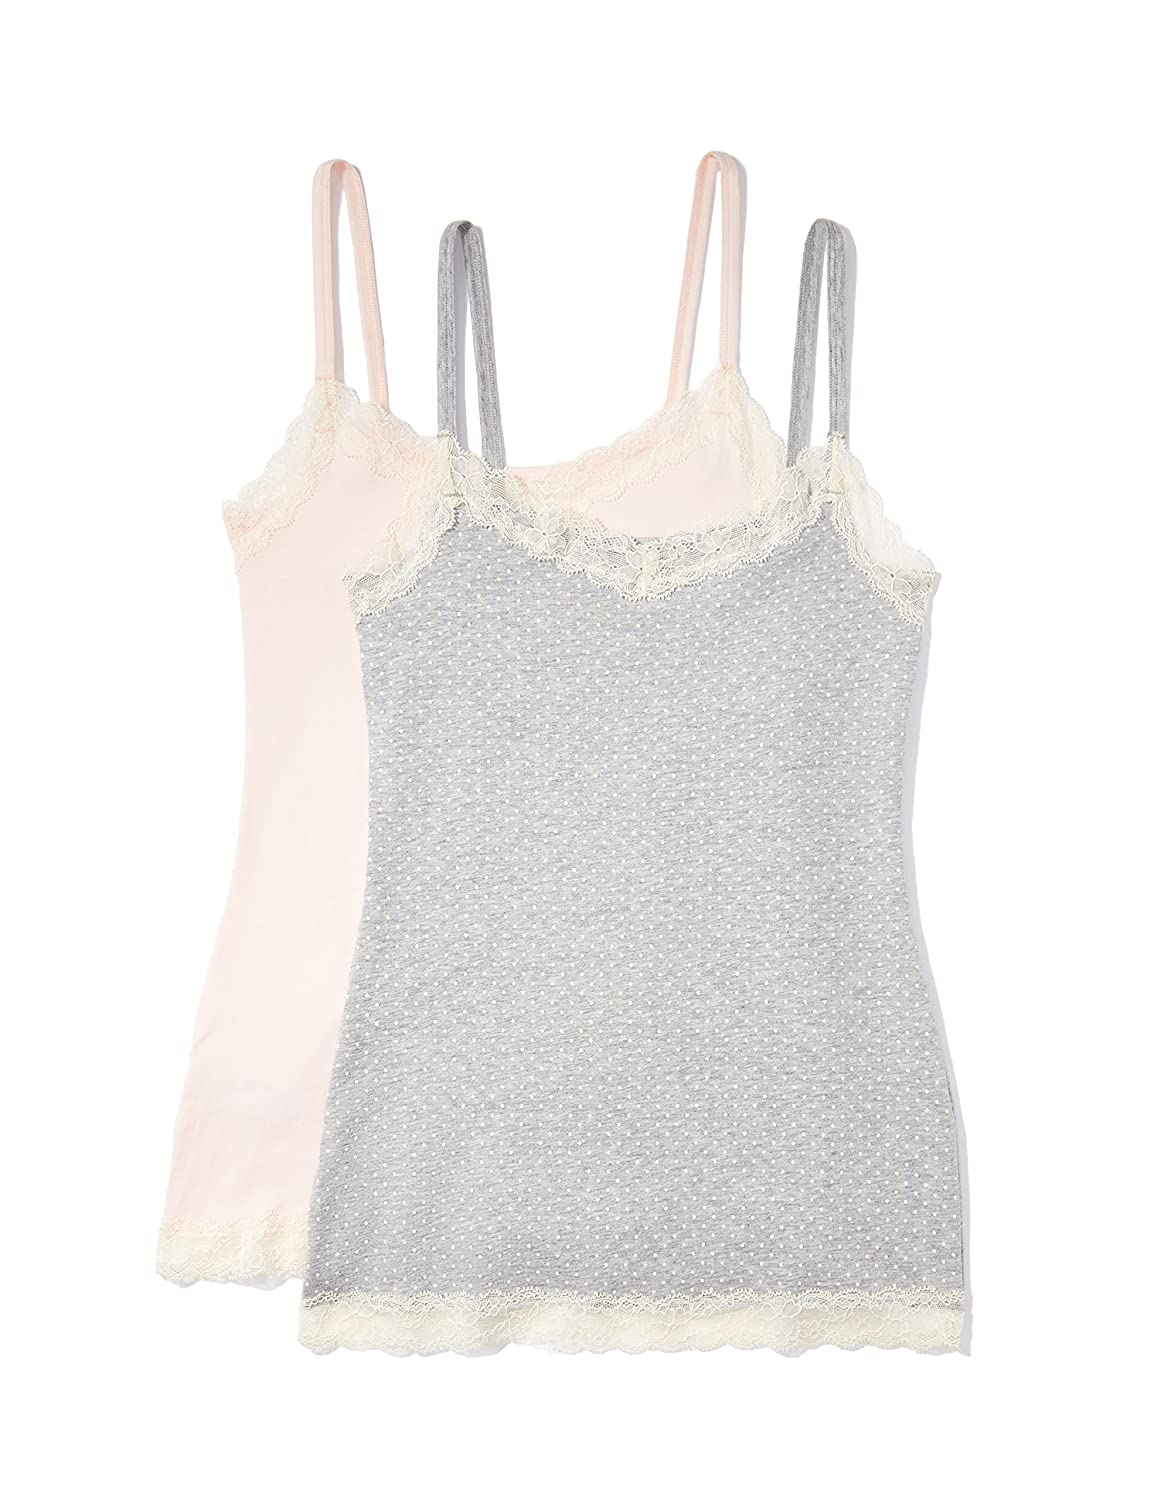 Iris /& Lilly Womens Body Natural Lace Trim Vest X-Large Soft Pink//Grey Pack of 2 Multicoloured